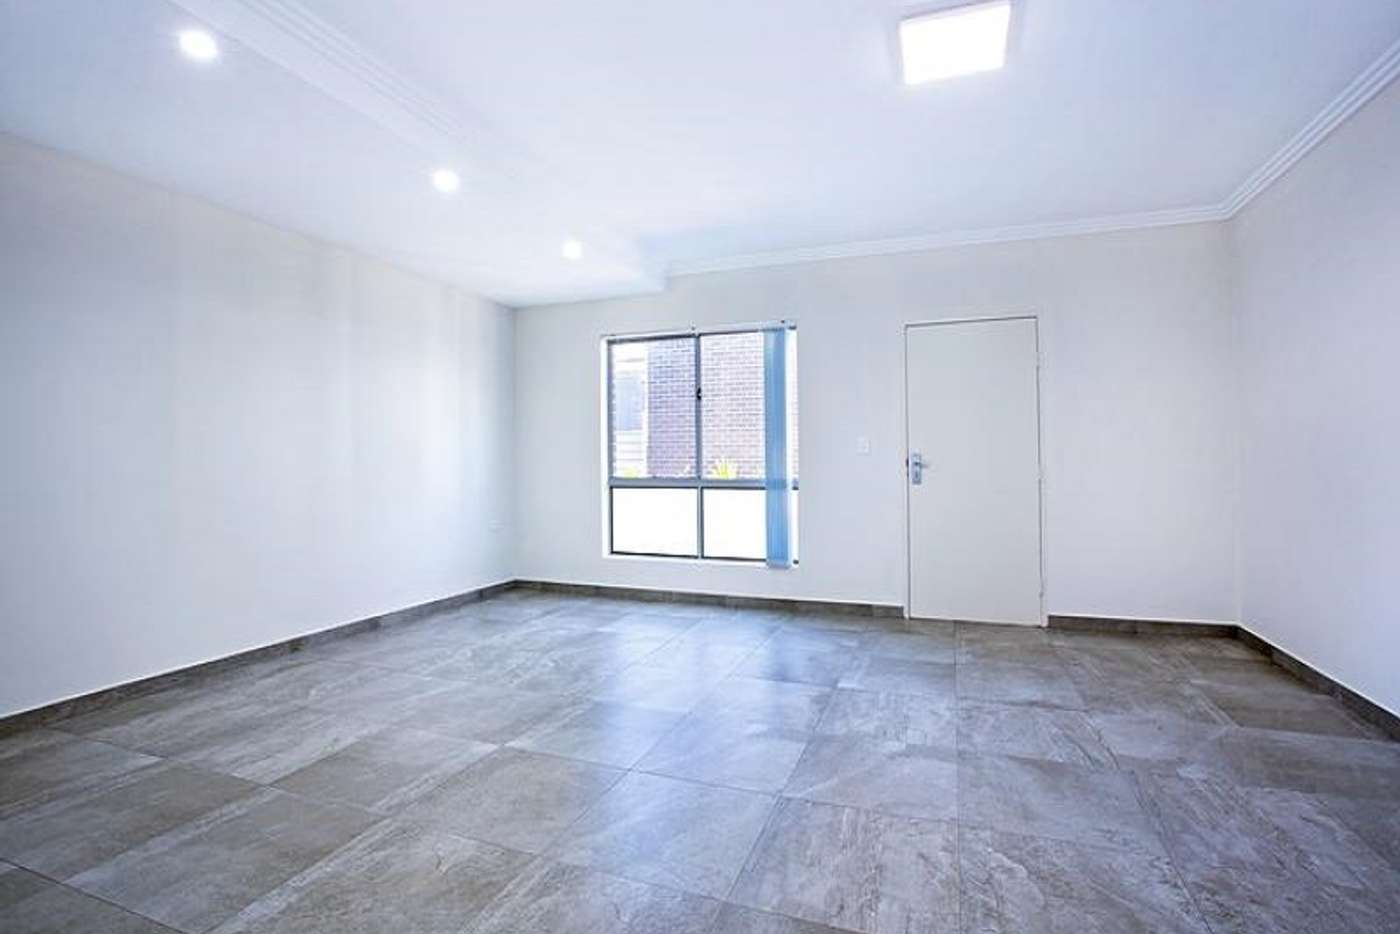 Main view of Homely townhouse listing, 14/20 Old Glenfield Road, Casula NSW 2170